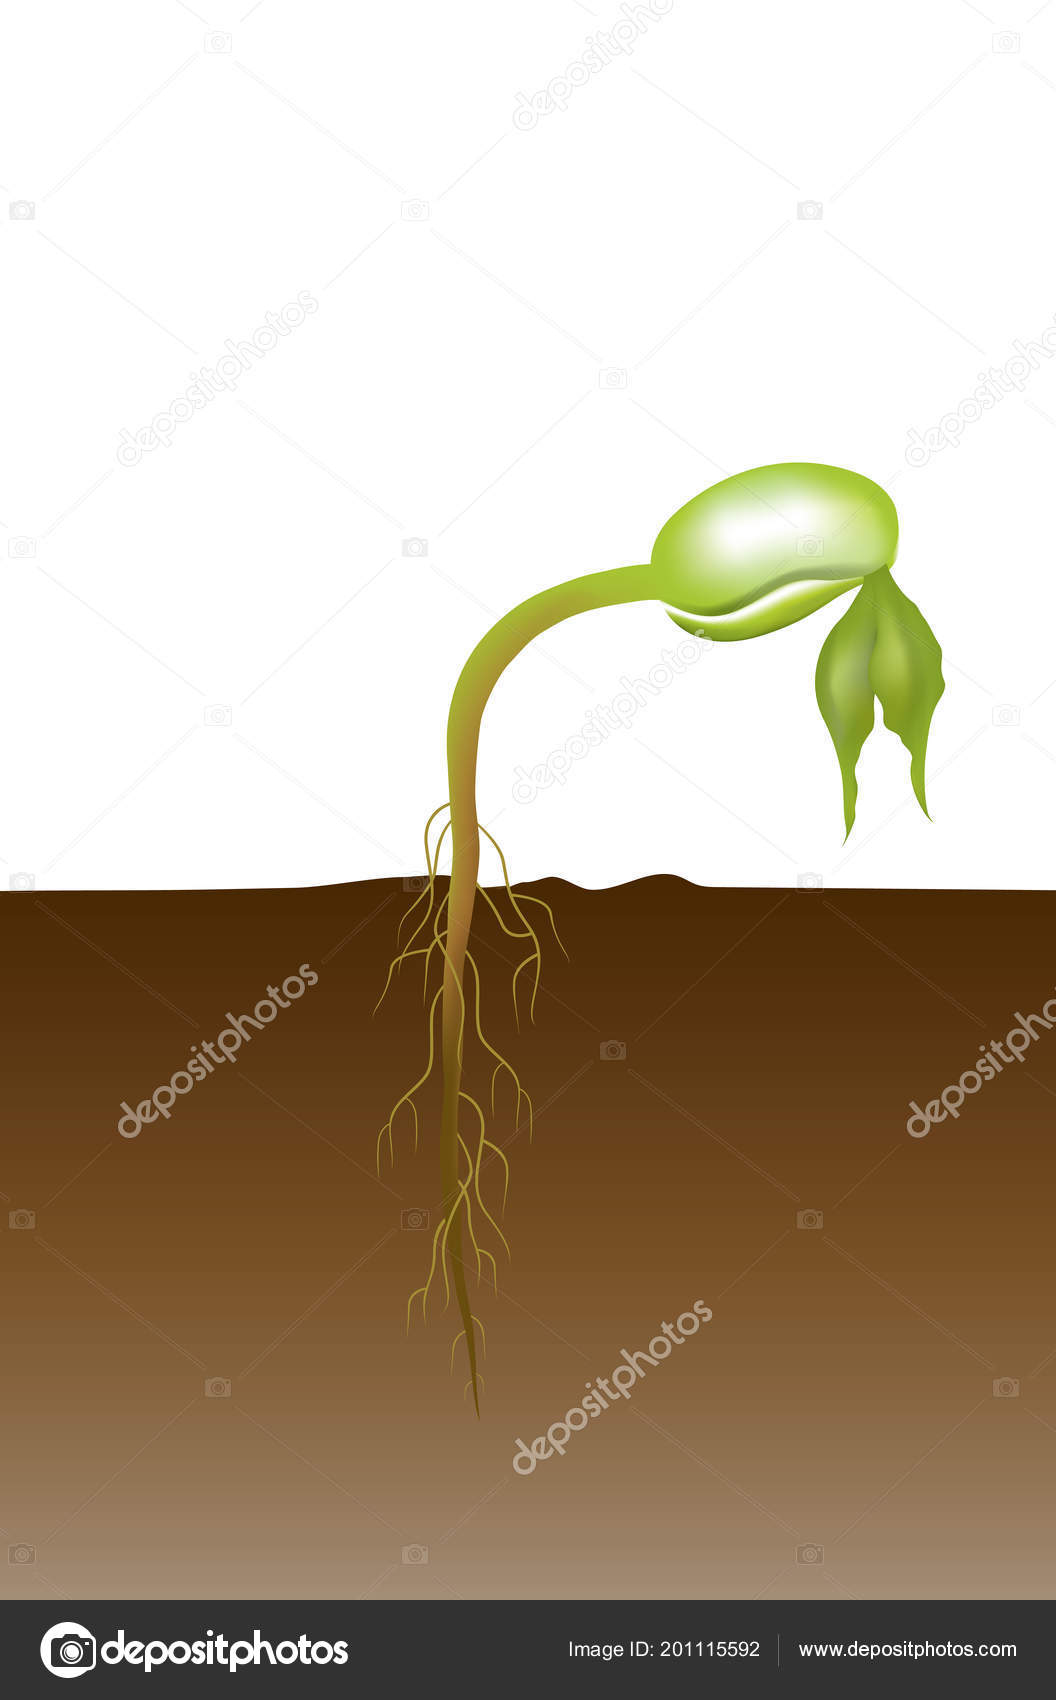 Seed Germination Process Which Embryo Develops Seedling Types With Diagram Is A By Into It Involves The Reactivation Of Metabolic Pathways That Lead To Growth